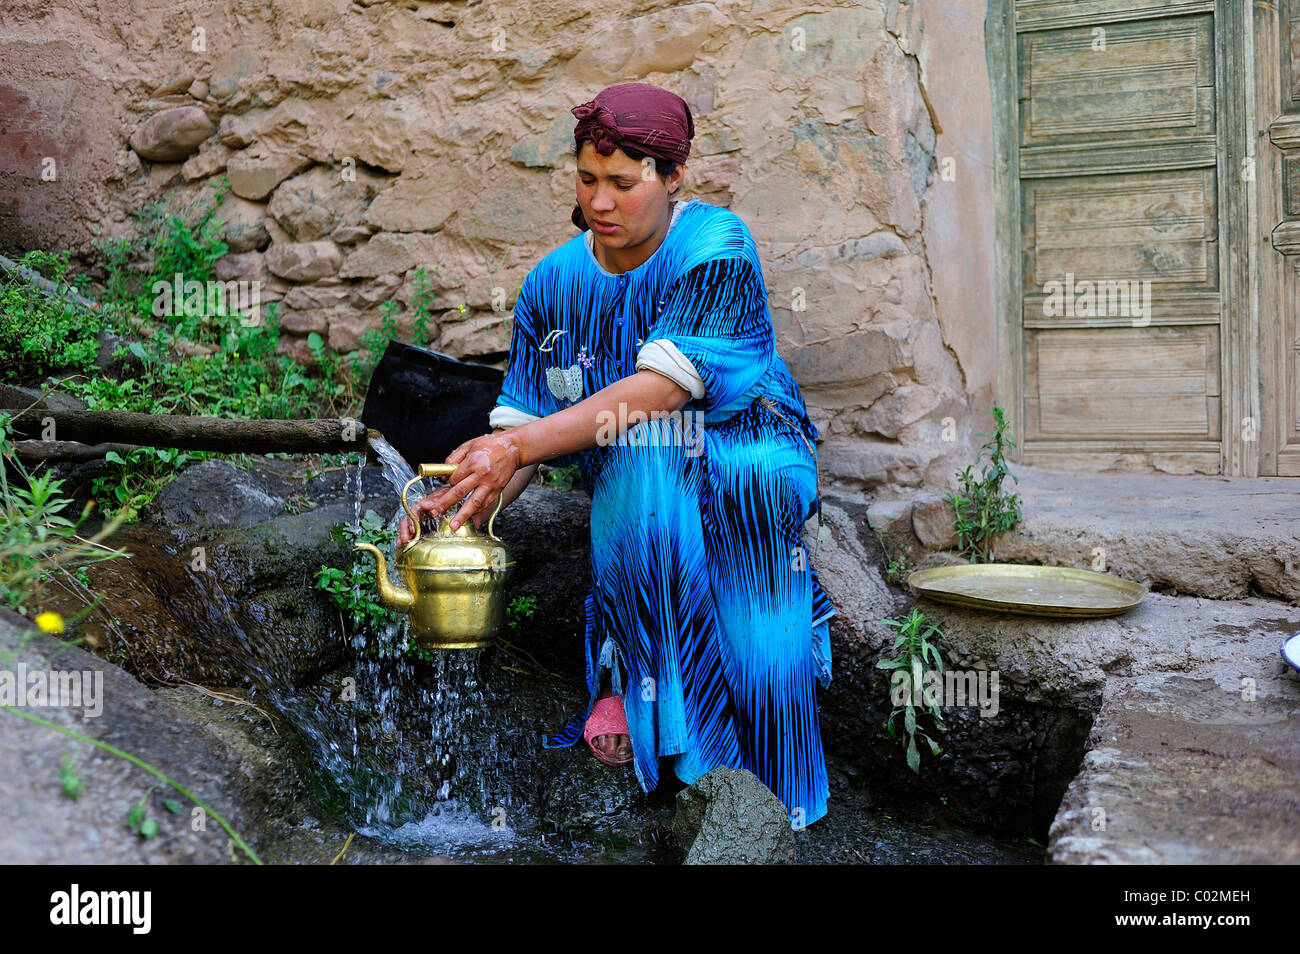 Woman cleaning a brass pot under running water, High Atlas, Morocco, Africa - Stock Image